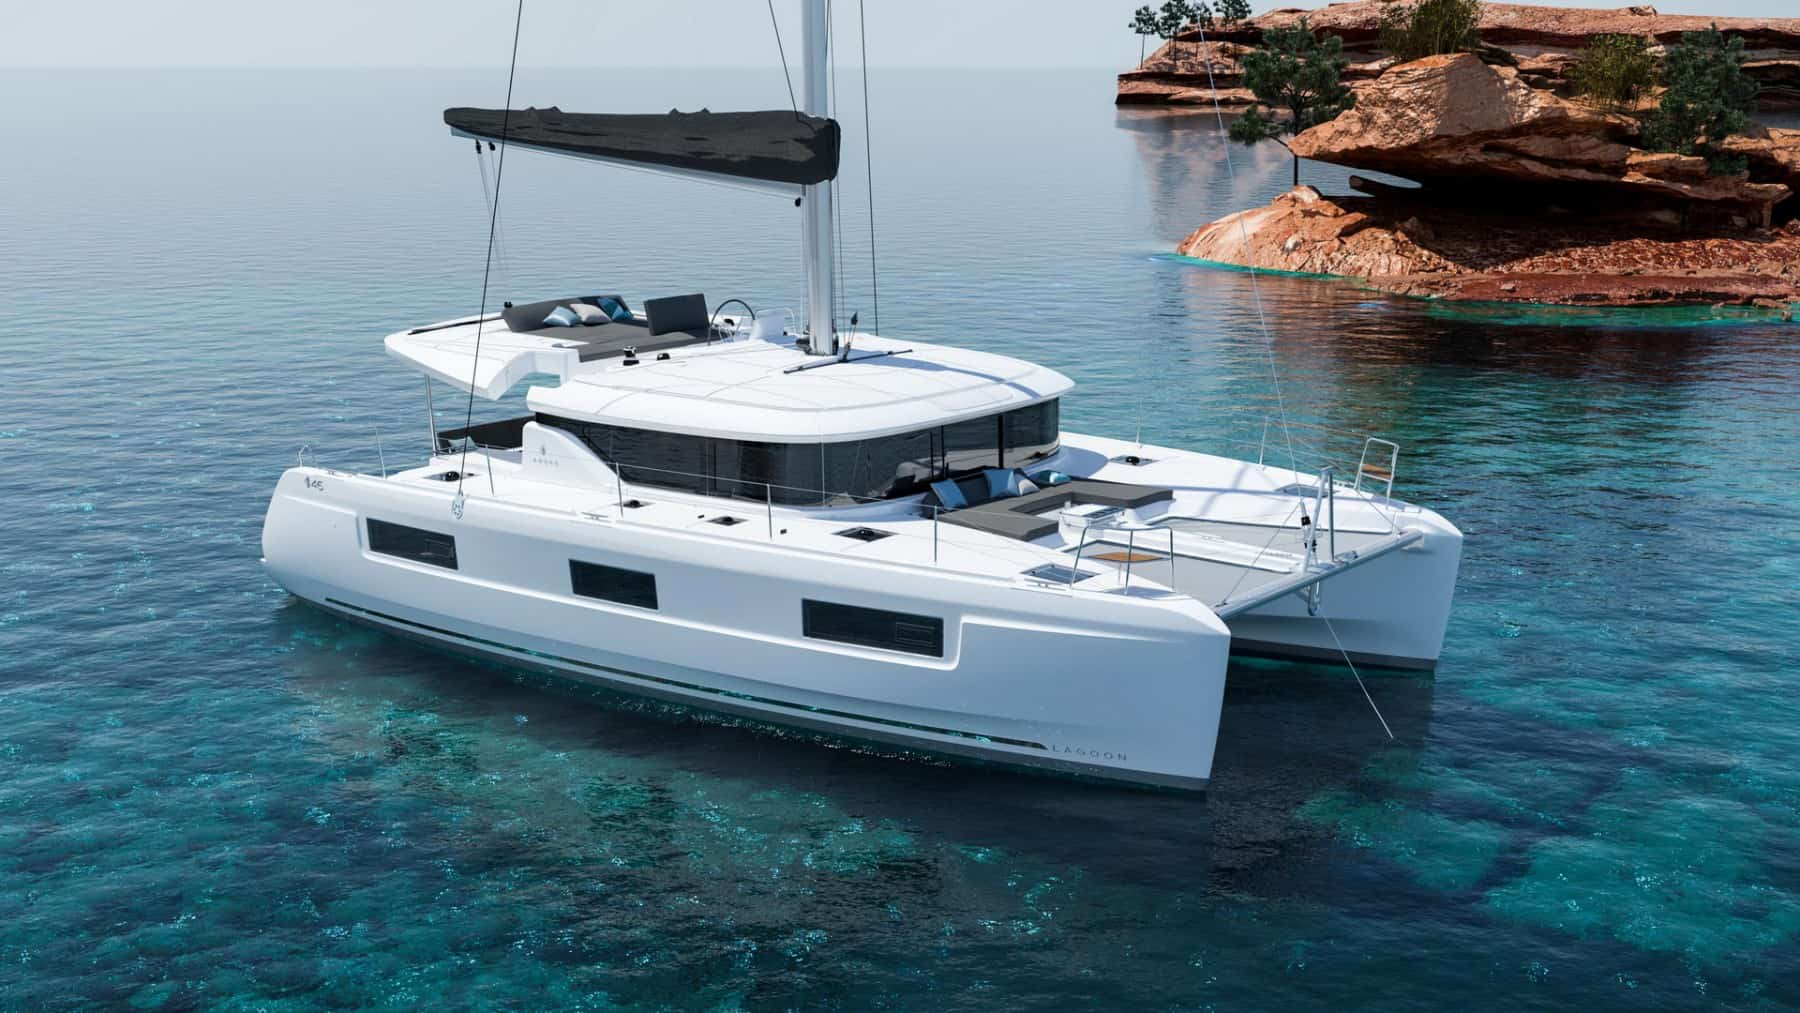 How do I finance buying a boat in charter?